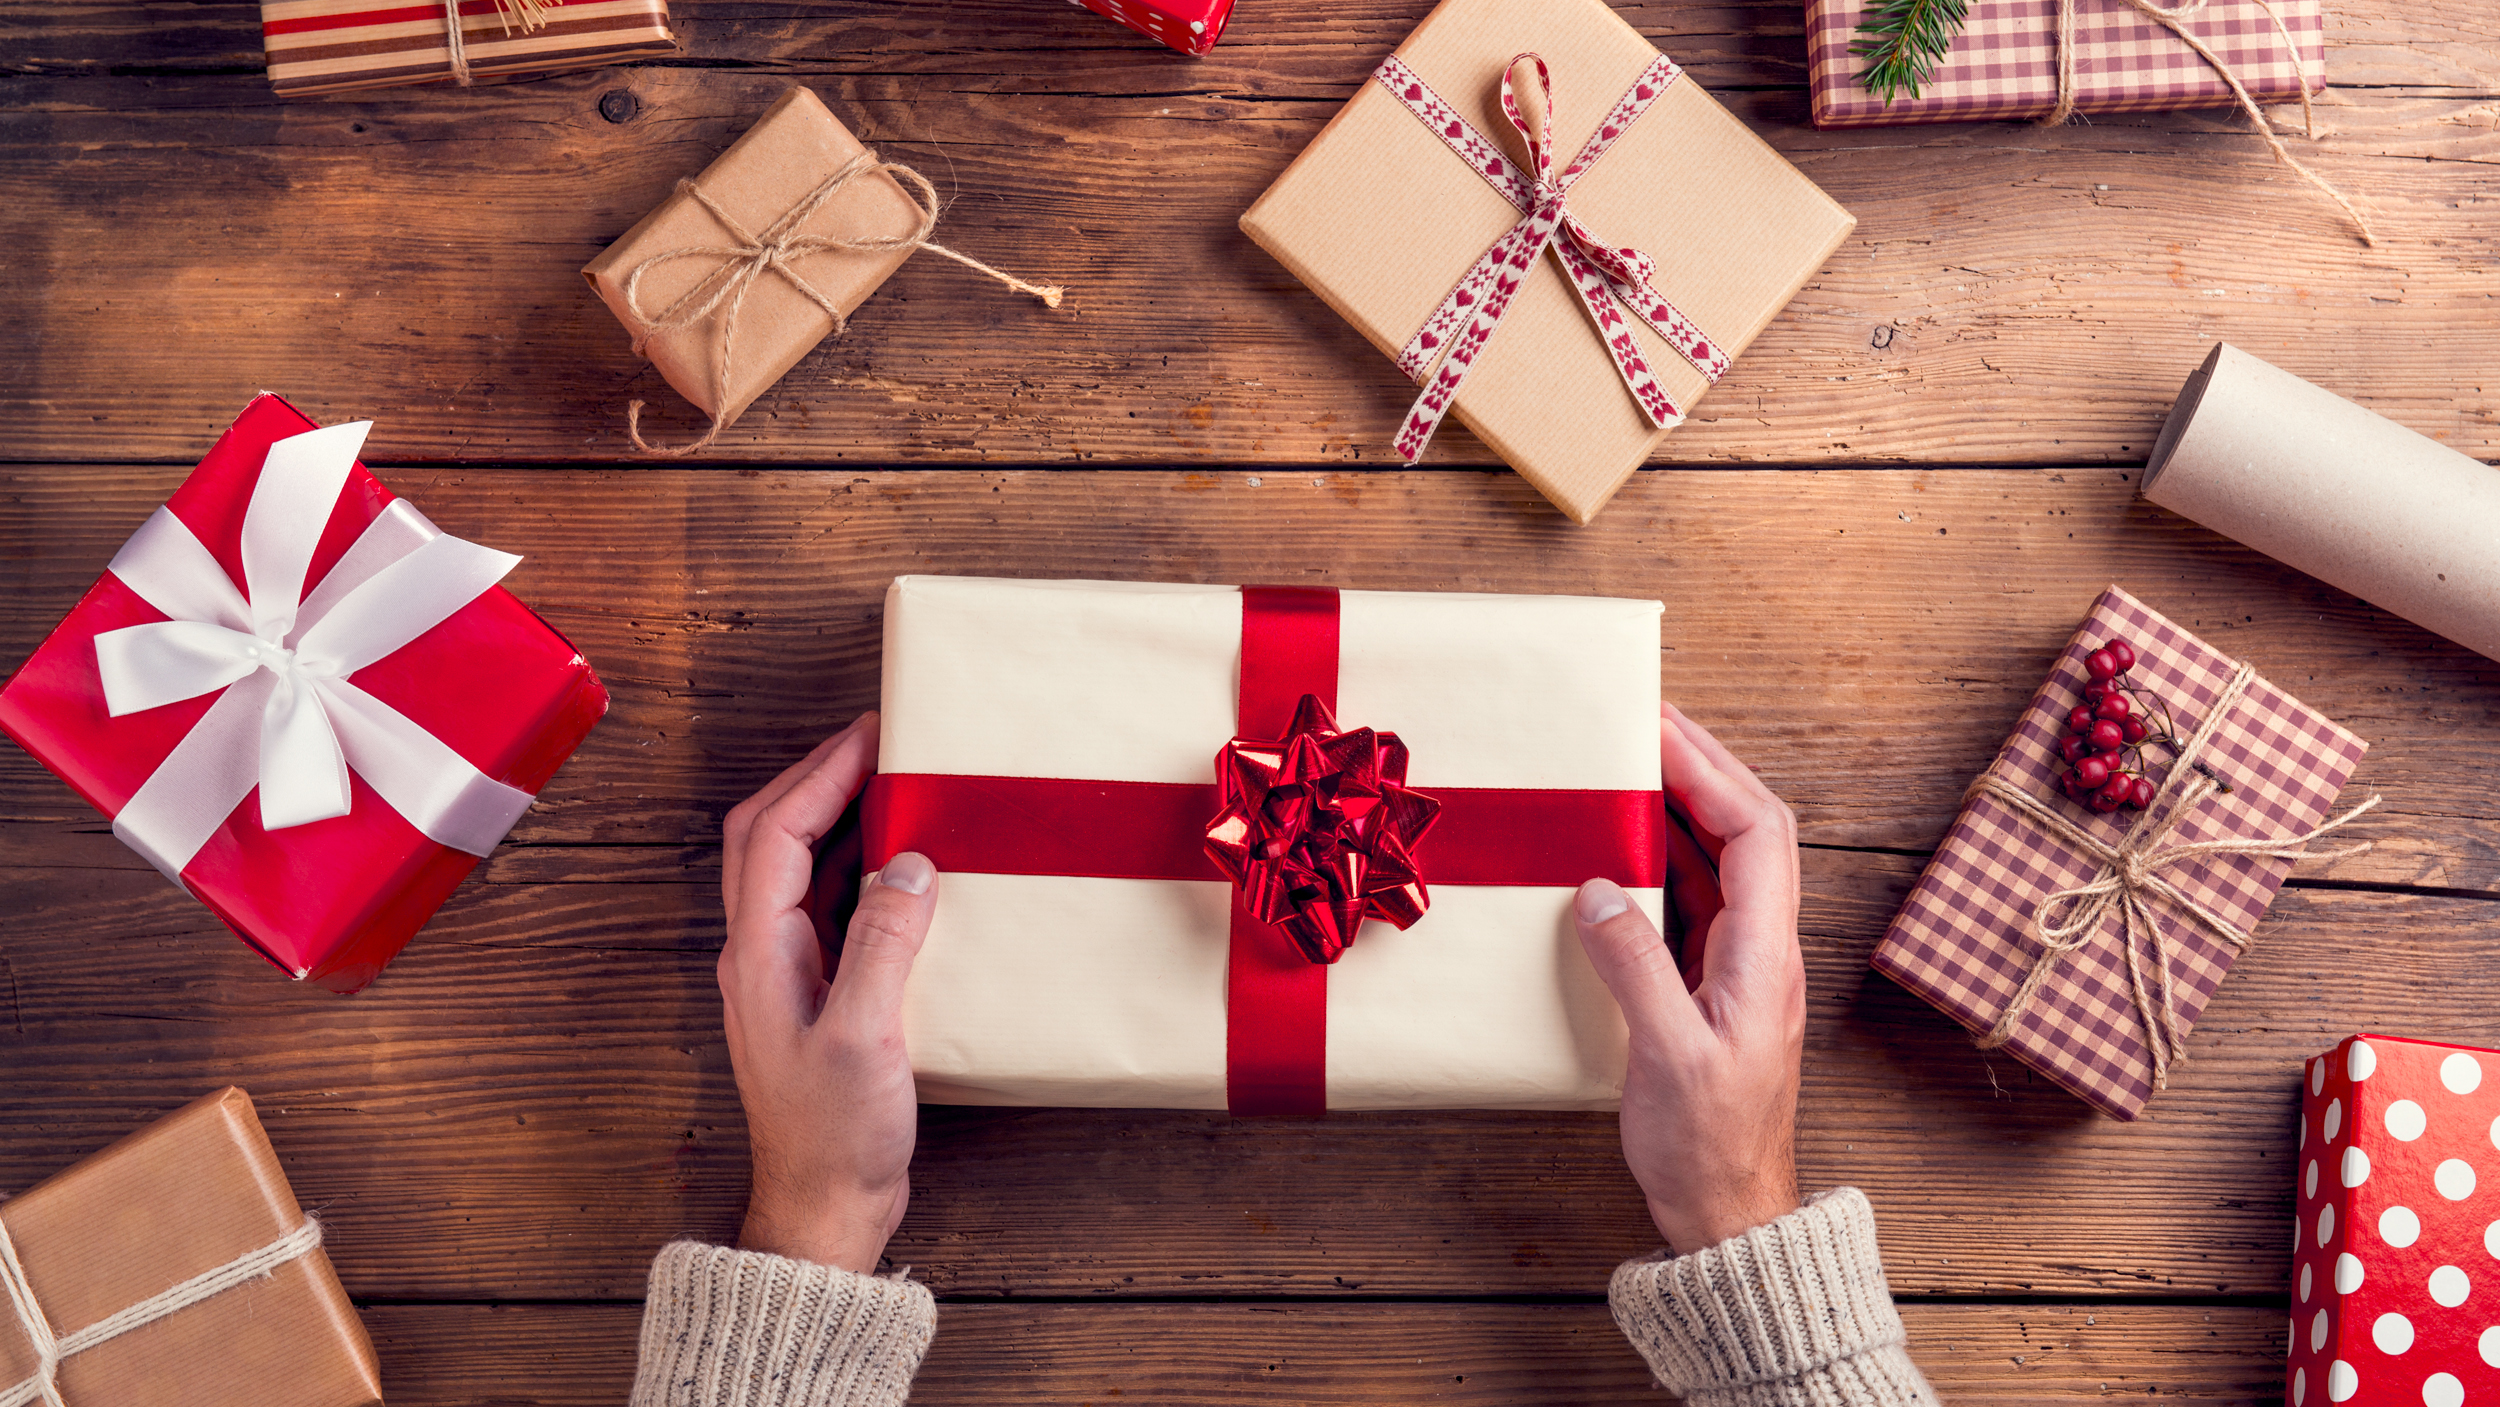 Christmas Reward Concepts For Males In 2015 - Fashion Styles Tips